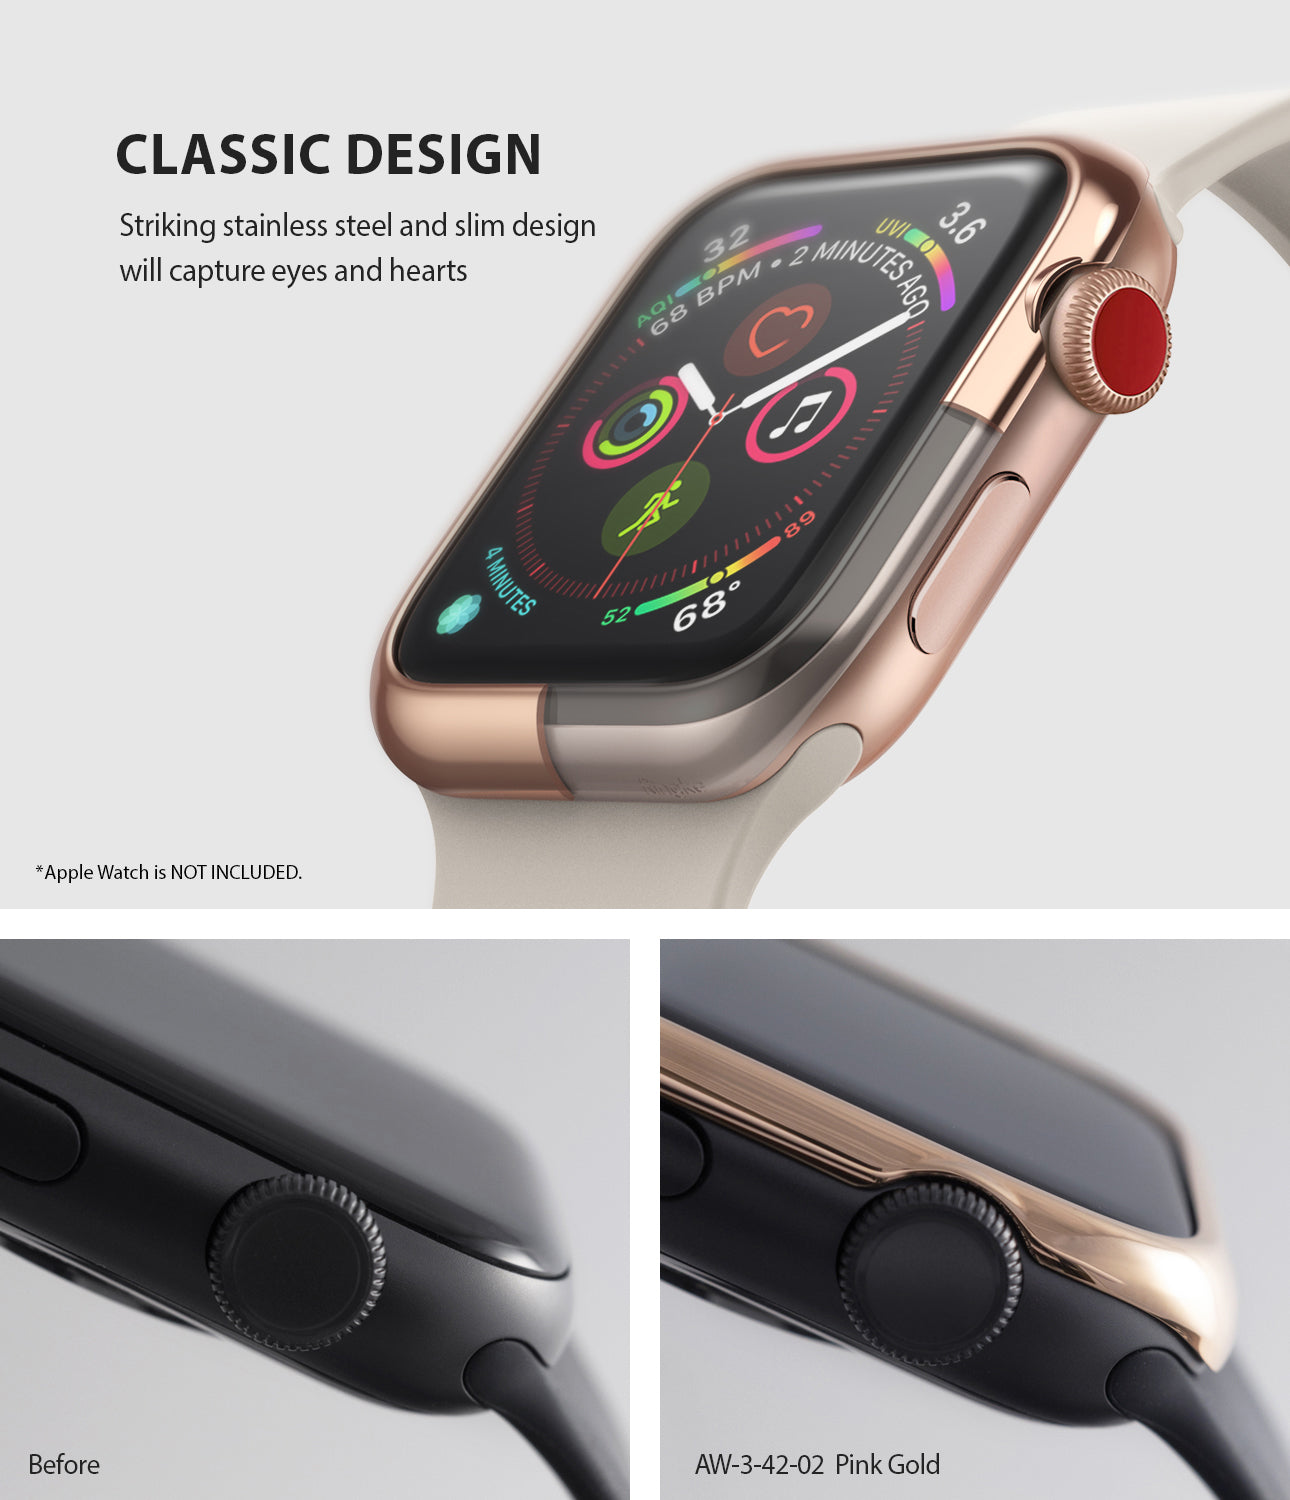 apple watch 3 2 1 42mm case ringke bezel styling stainless steel frame cover 42-02 classic design